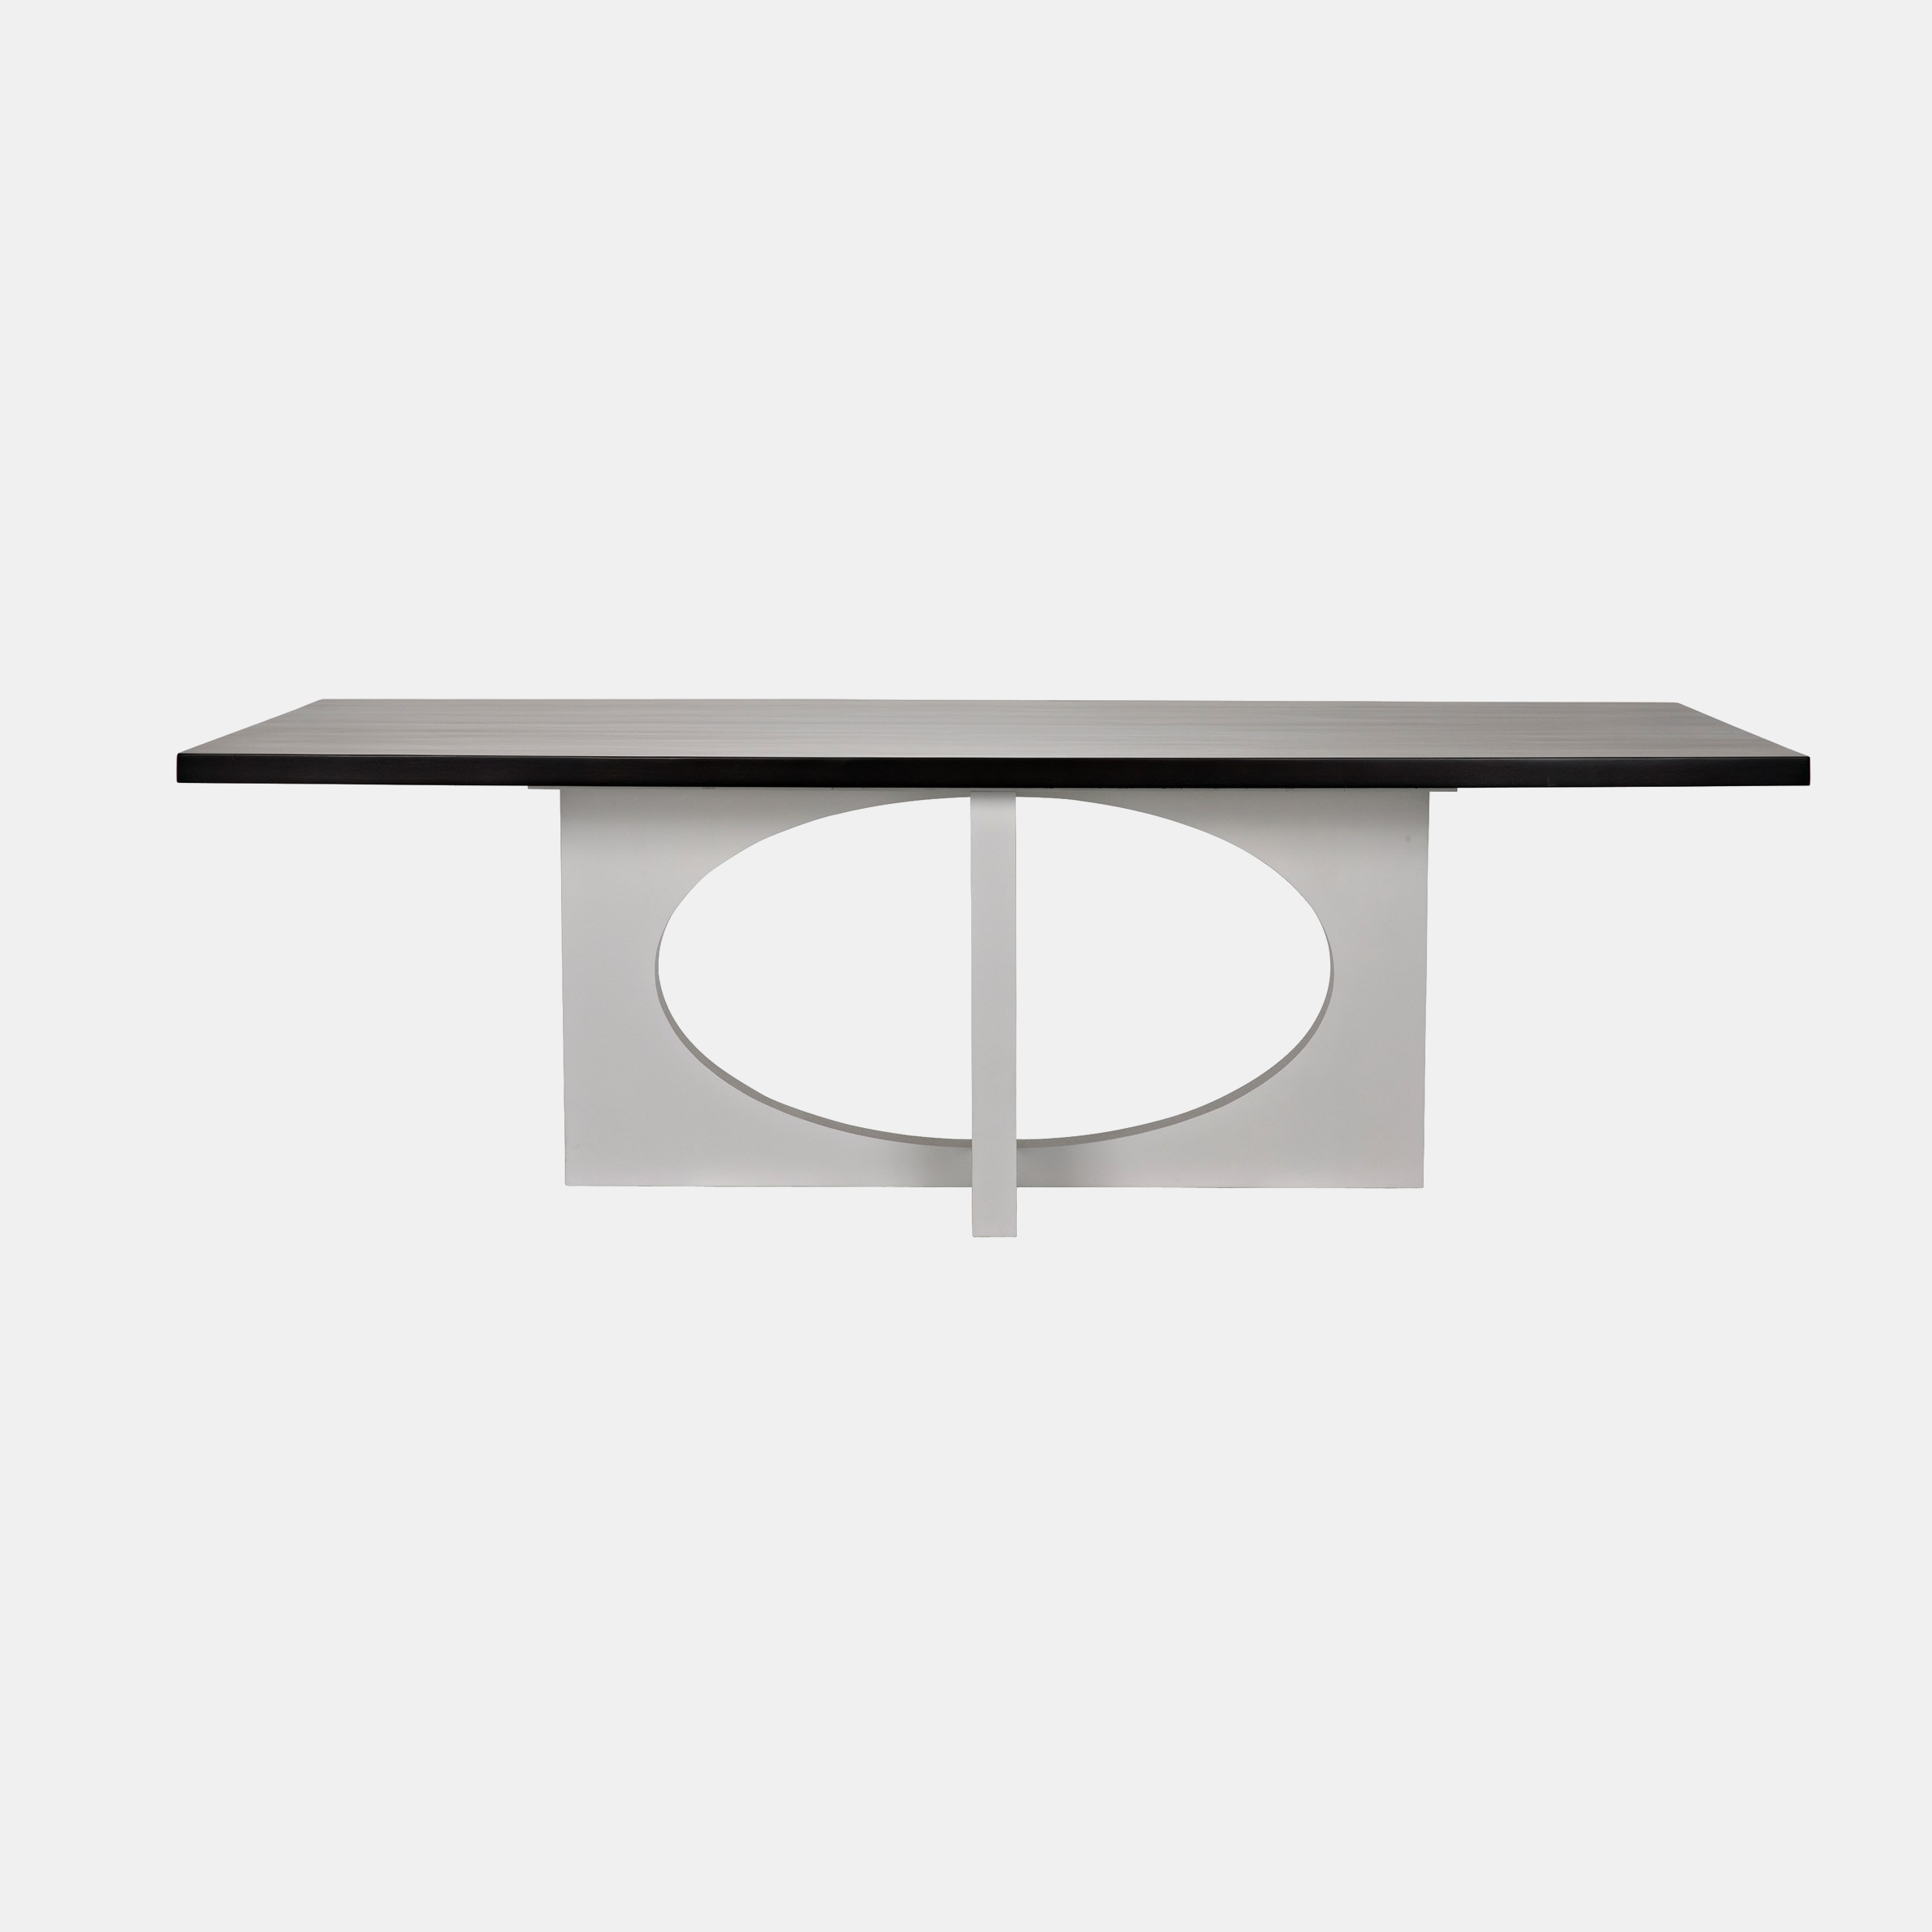 """Buttercup Dining Table  96""""l x 42""""w x 30.5""""h  Available in espresso top / mystic white base (shown), gray wash wax, and light brown wax. SKU878CFC"""